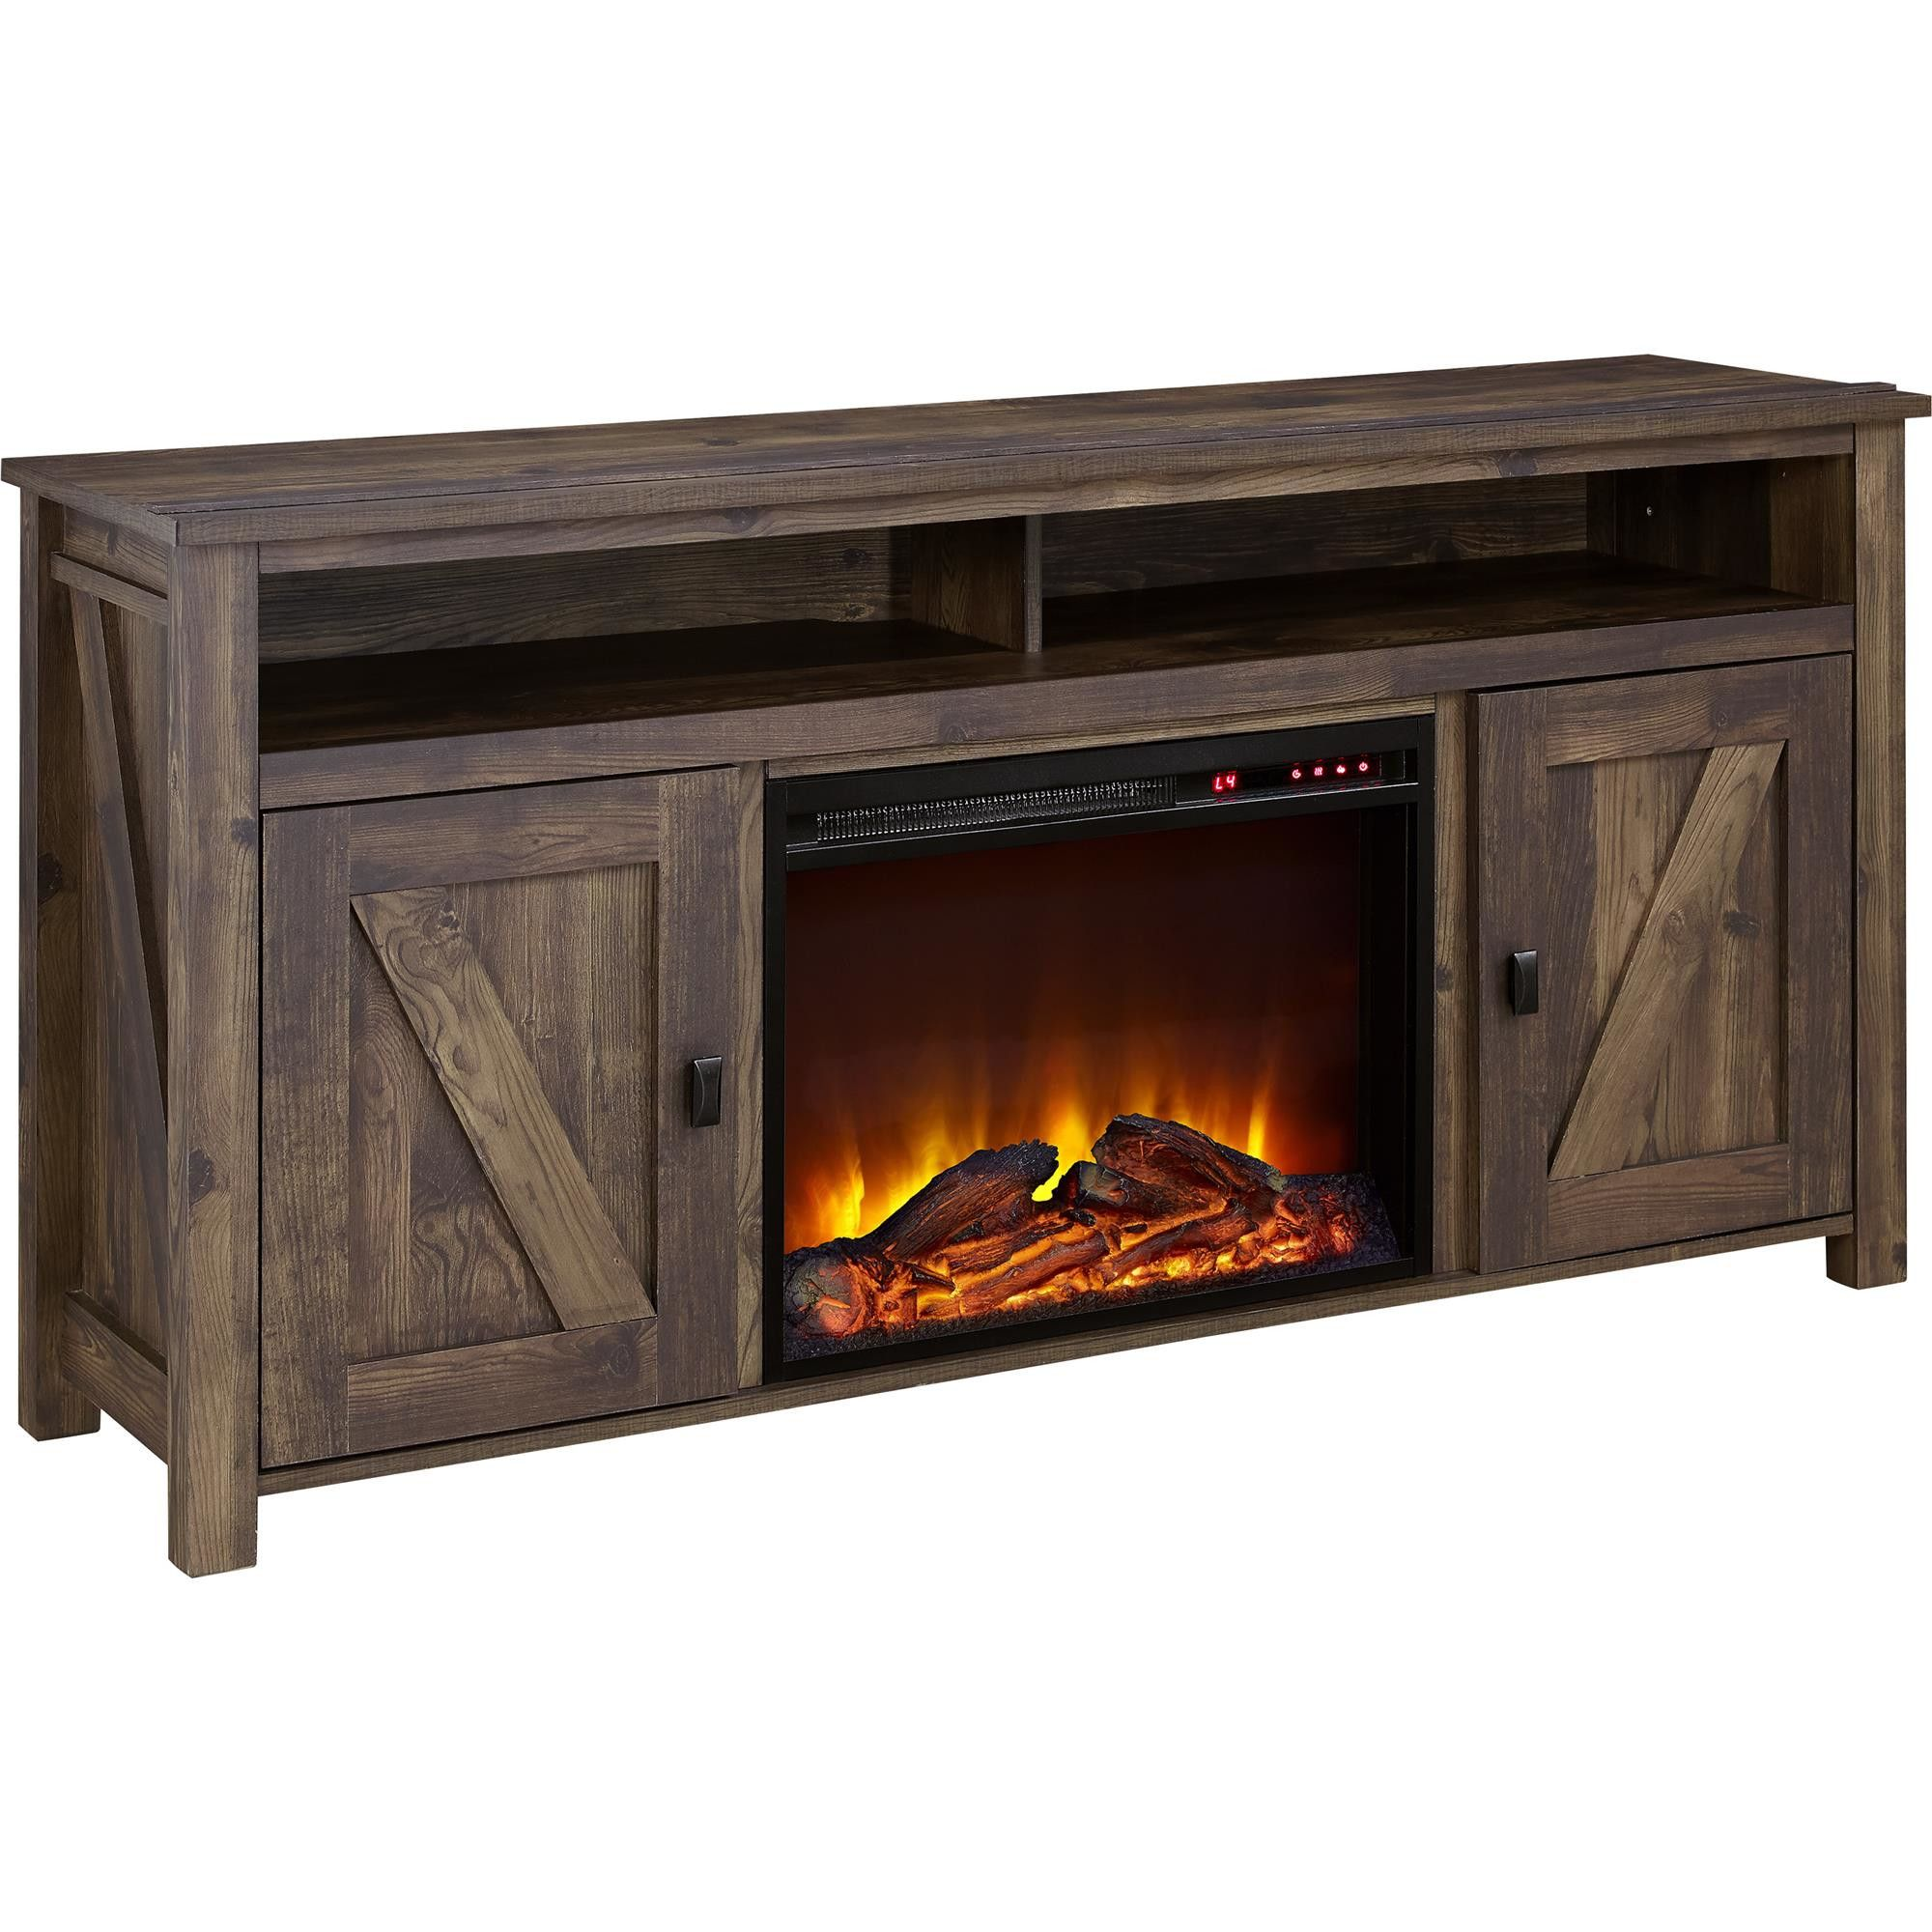 features 120 volts exclusive august grove flame built in